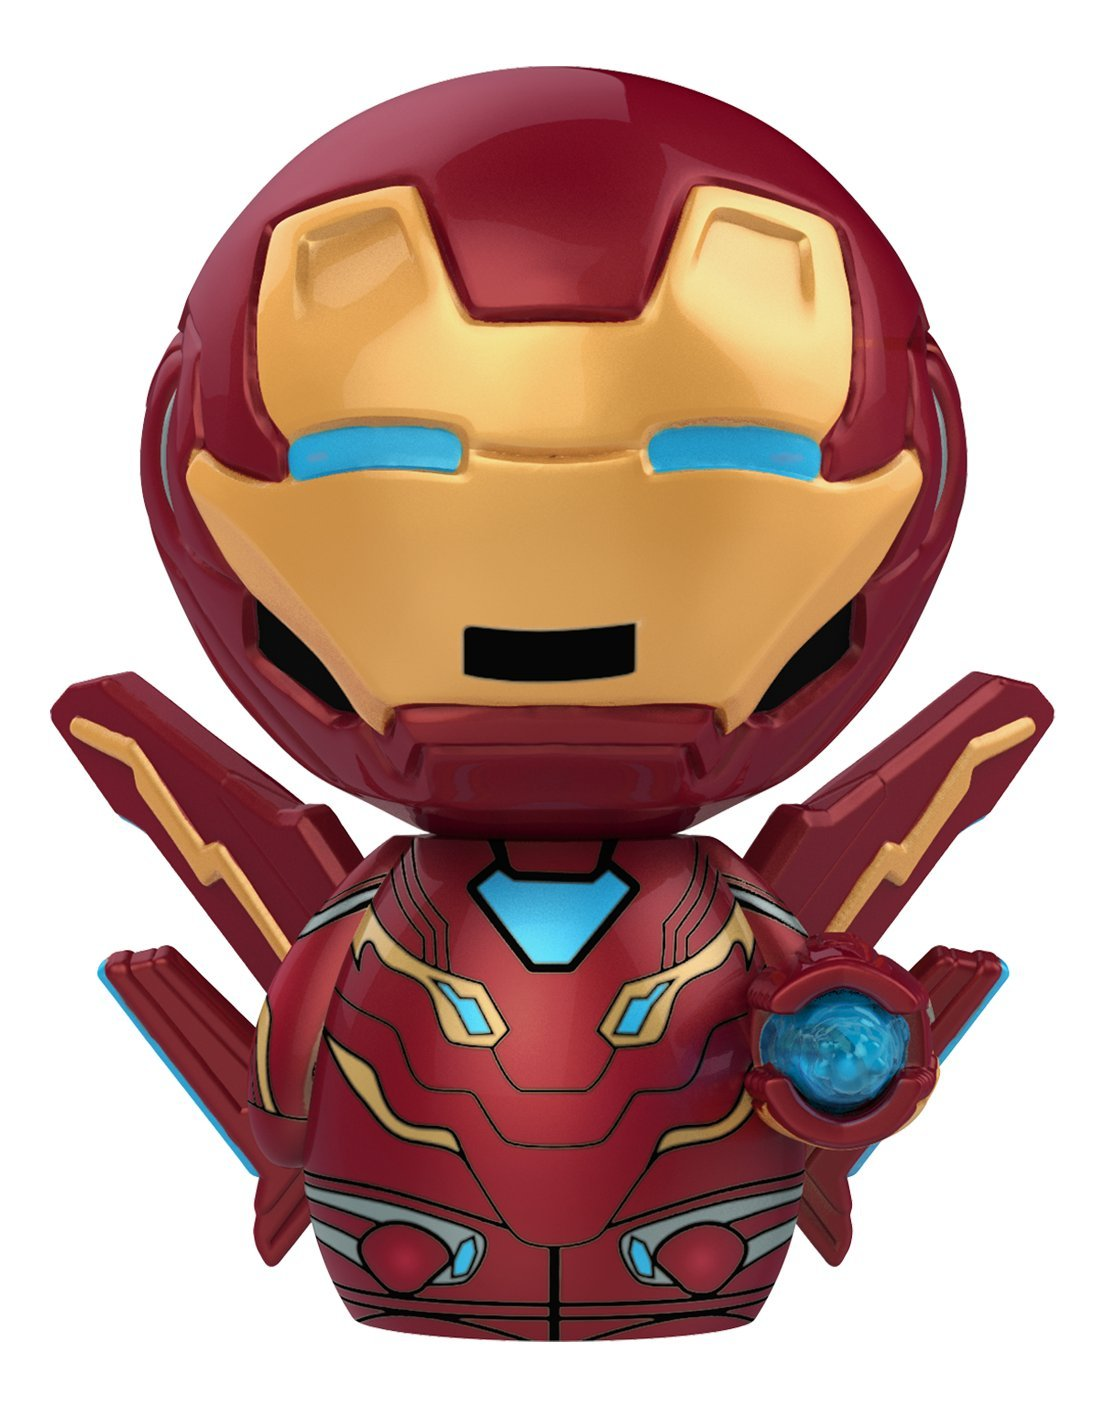 Avengers Infinity War 27383 Dorbz Marvel Iron Man with Wings Figure, Multi Colour